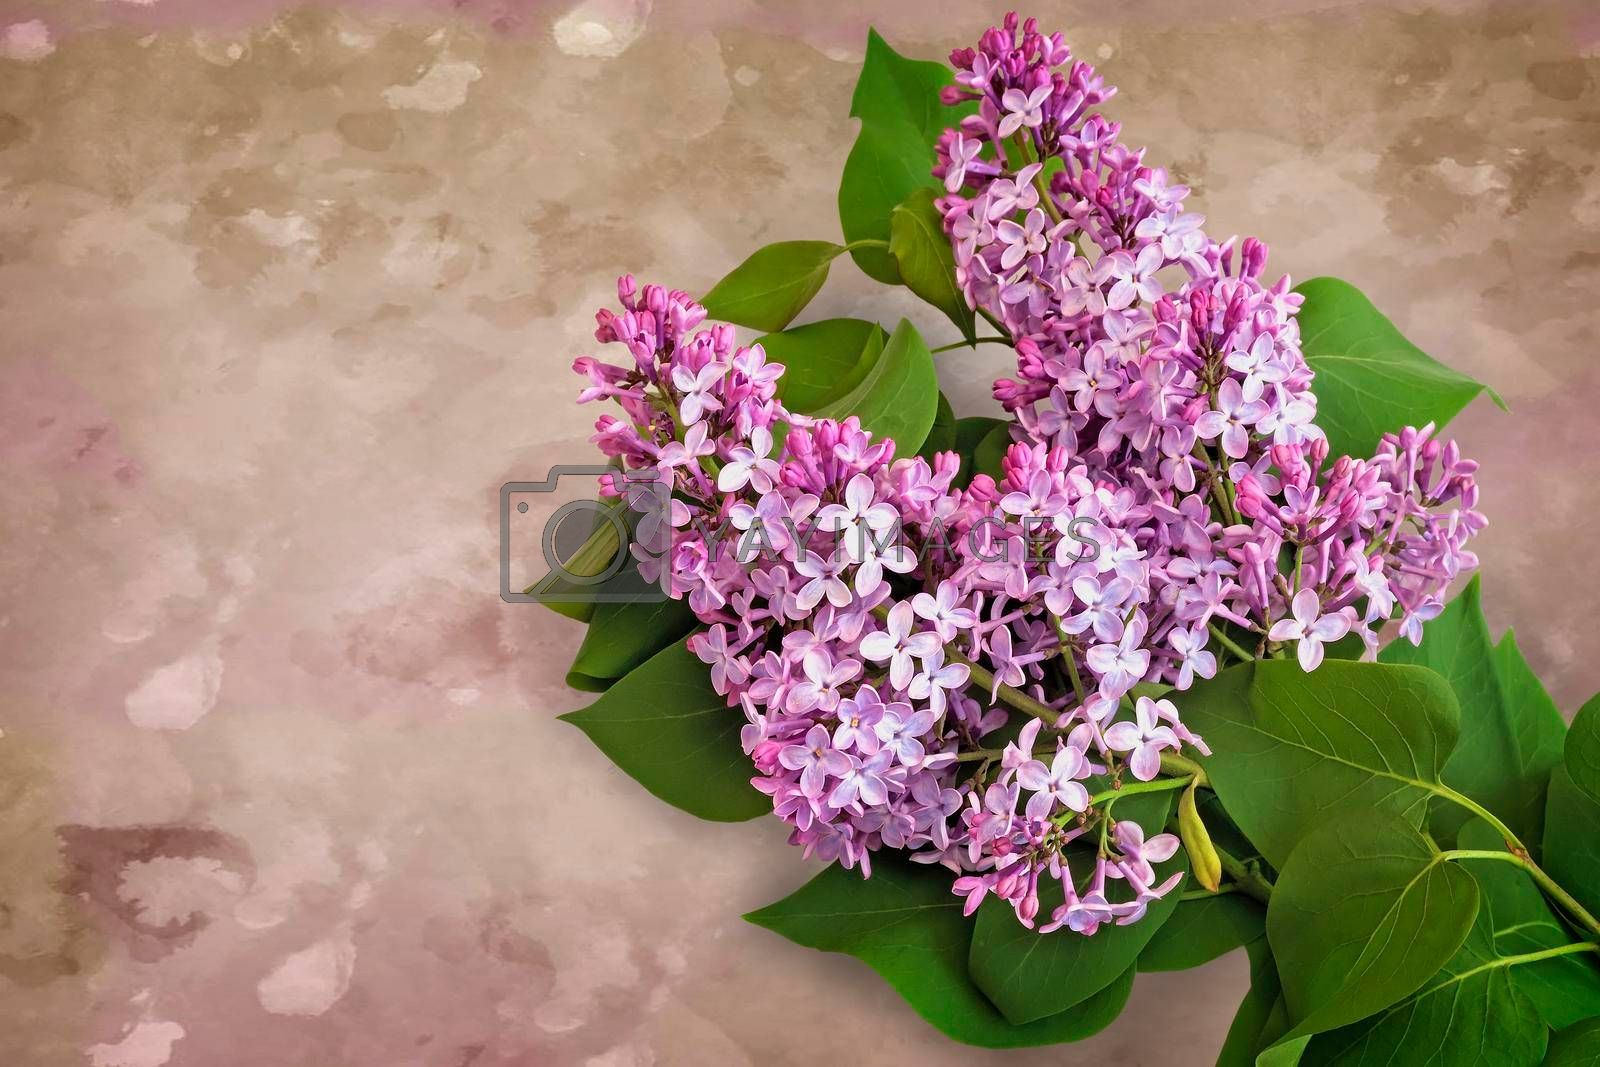 Beautiful lilac flowers among the green leaves. Presented close-up